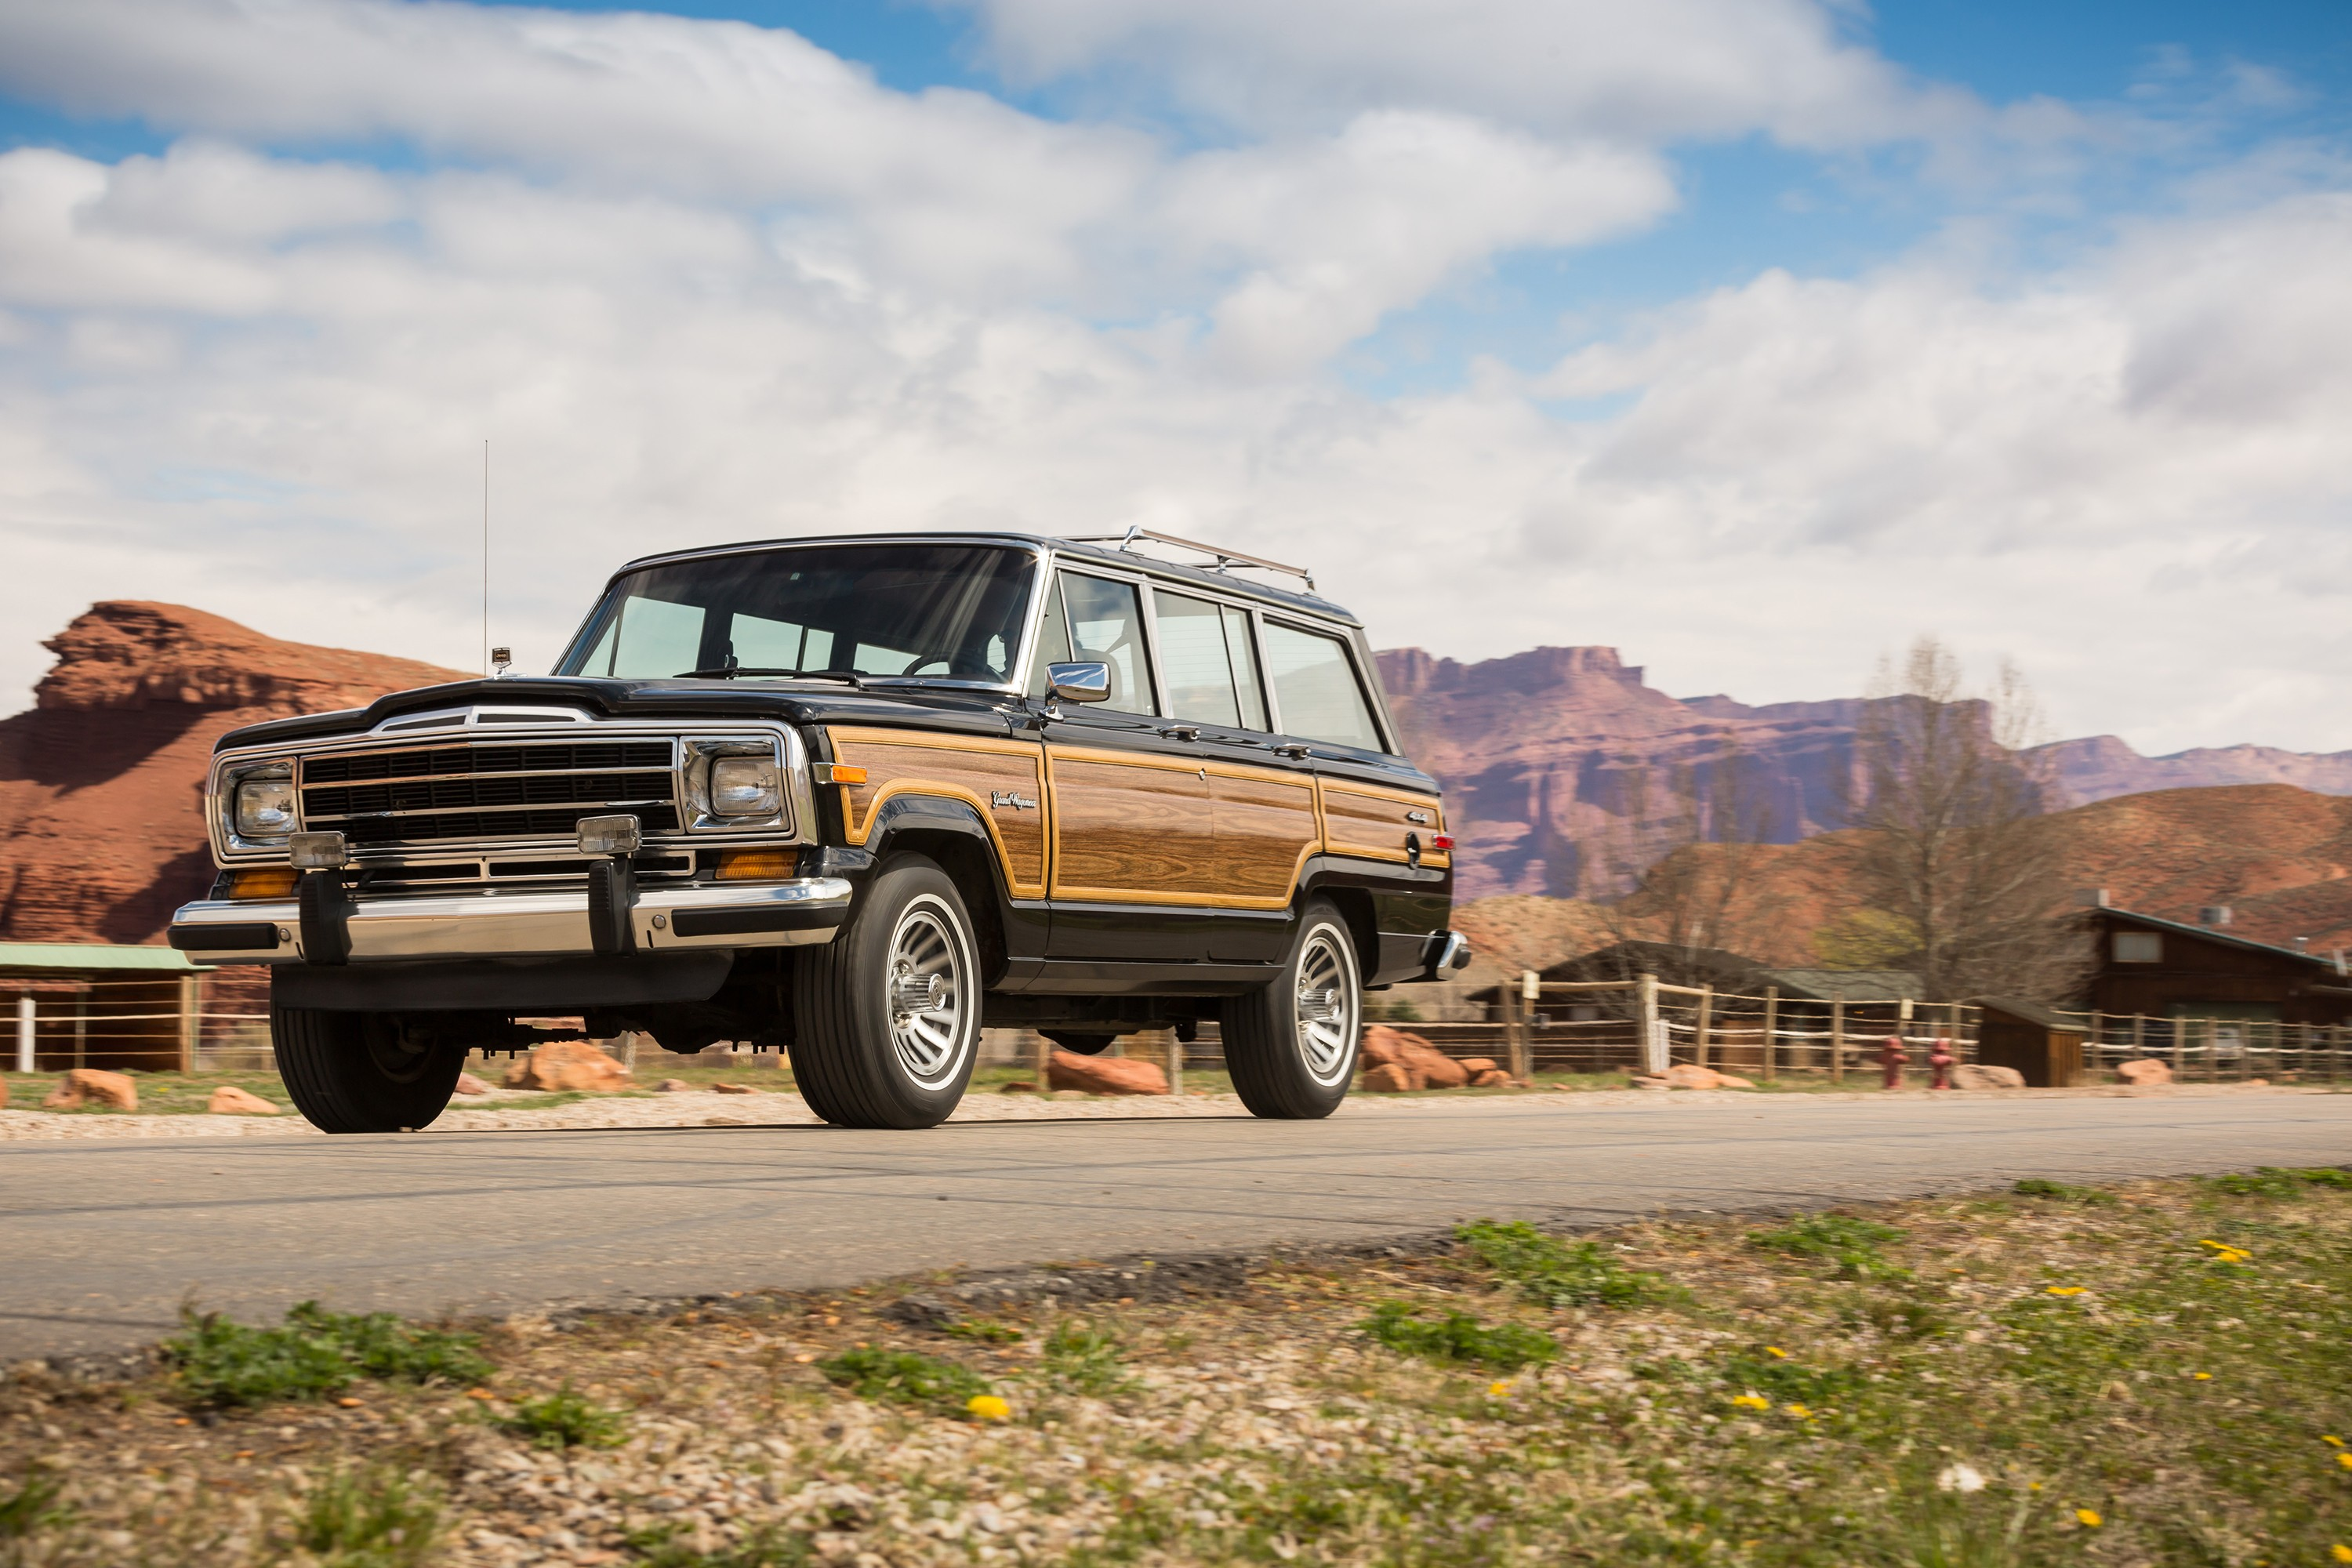 Fully Loaded 2019 Jeep Grand Wagoneer Could Sell For as Much as